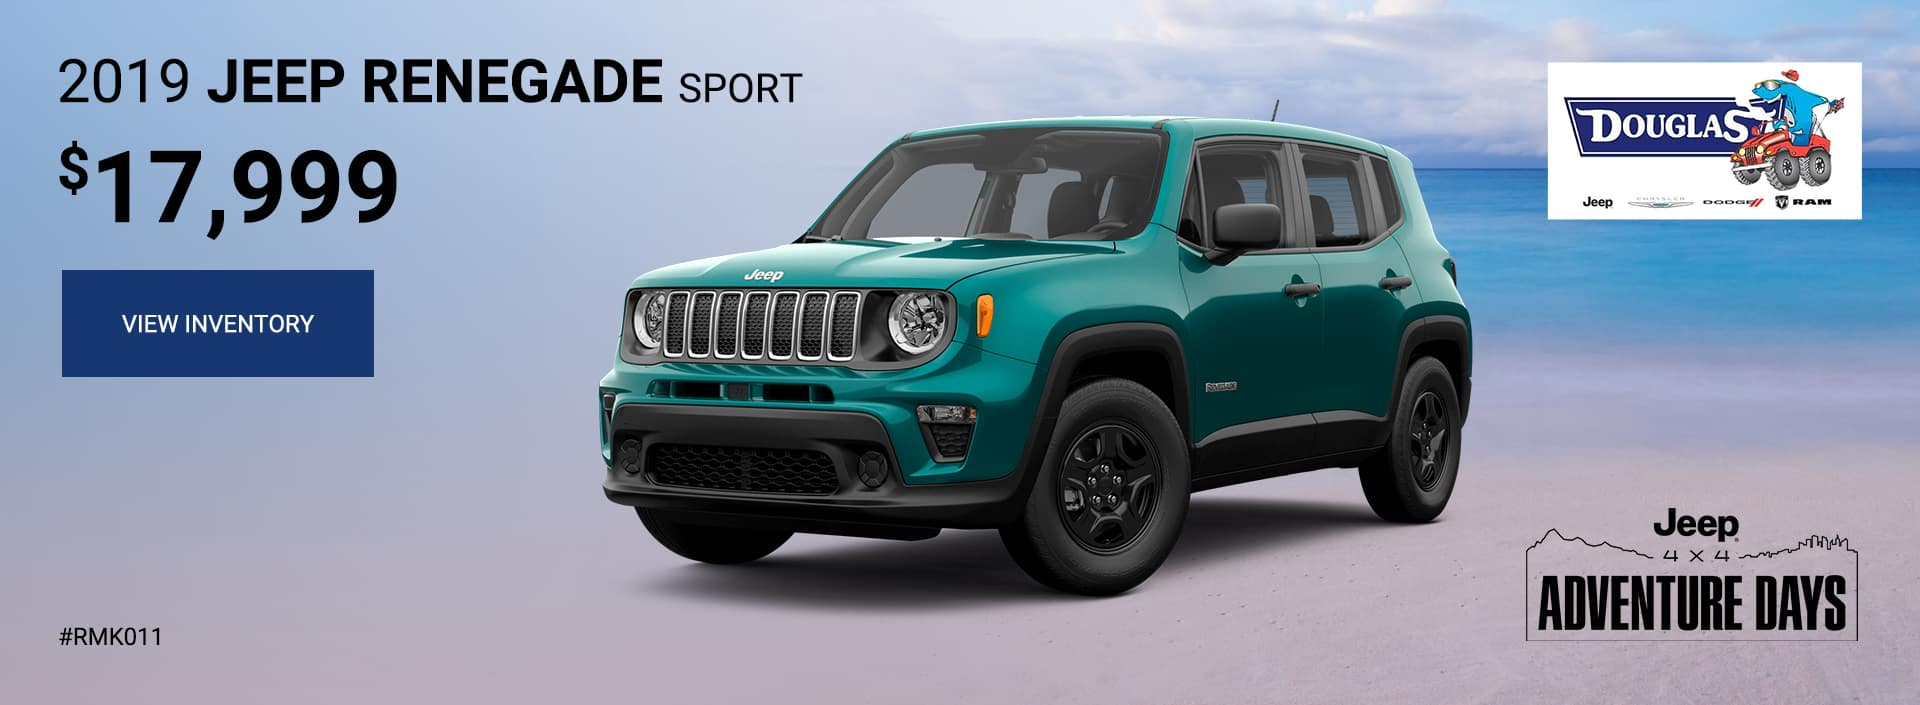 2019 Jeep Renegade Sport Lease Deal Jeep 4x4 Adventure Days